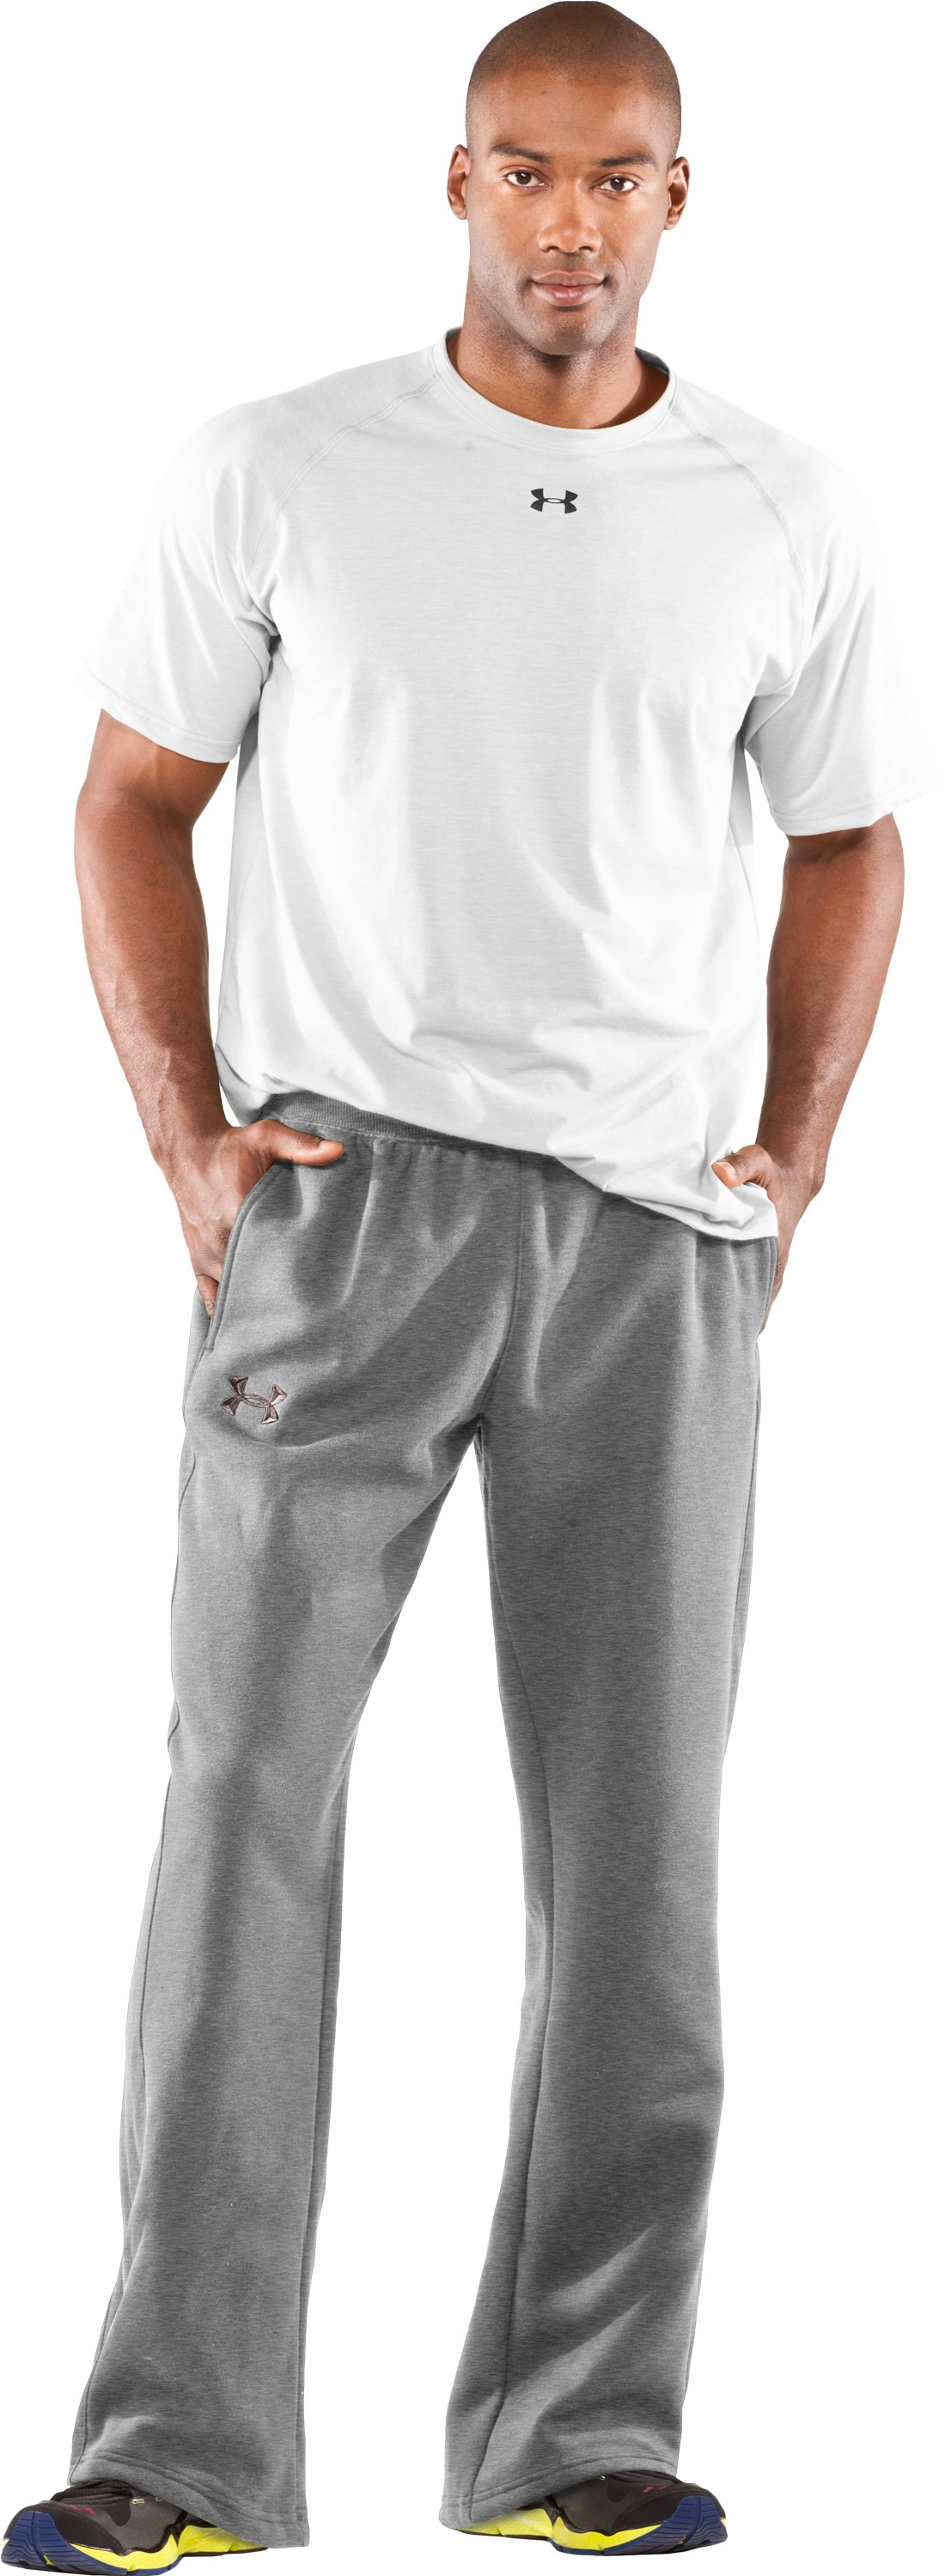 Men's Team Charged Cotton® Storm Pants, True Gray Heather